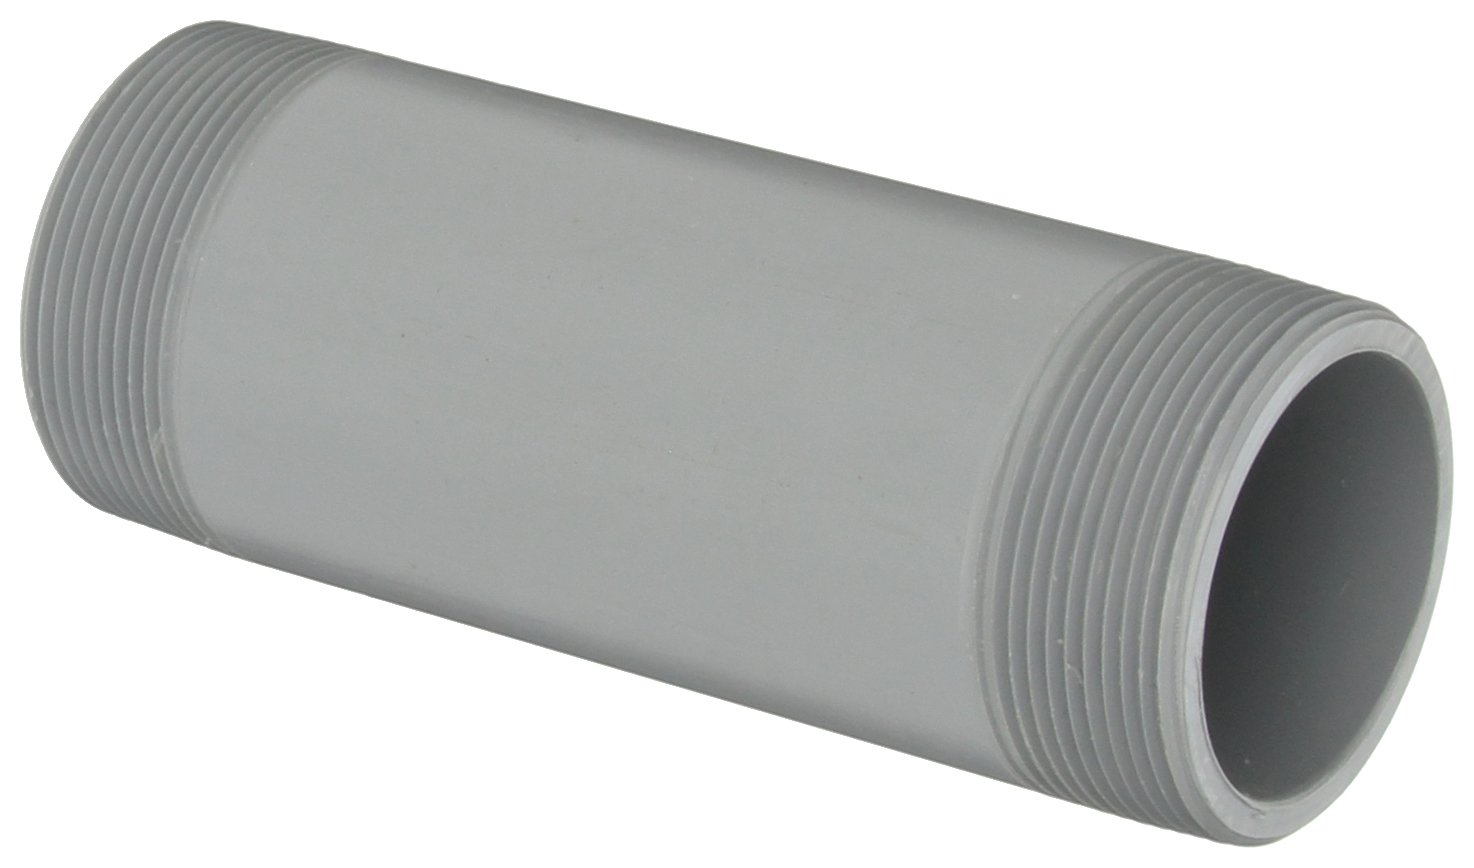 3 NPT Female GF Piping Systems PVC Pipe Fitting Schedule 80 Gray Cap